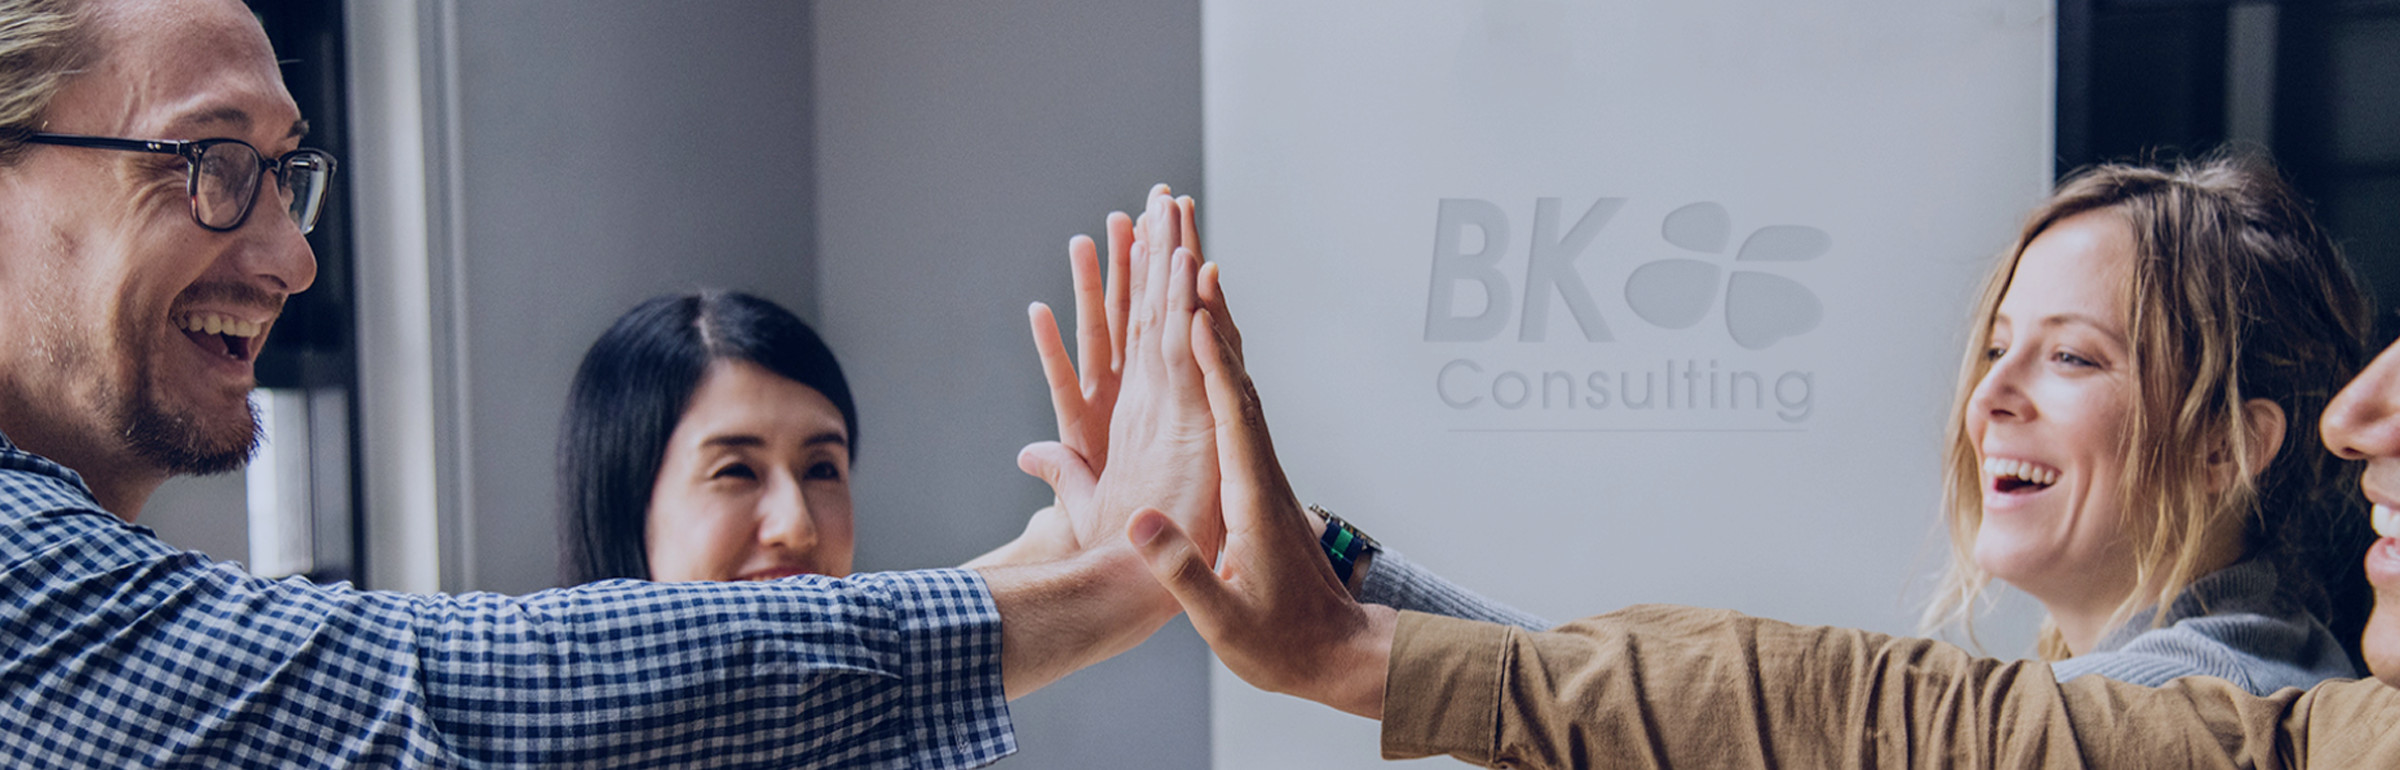 Banner BK CONSULTING